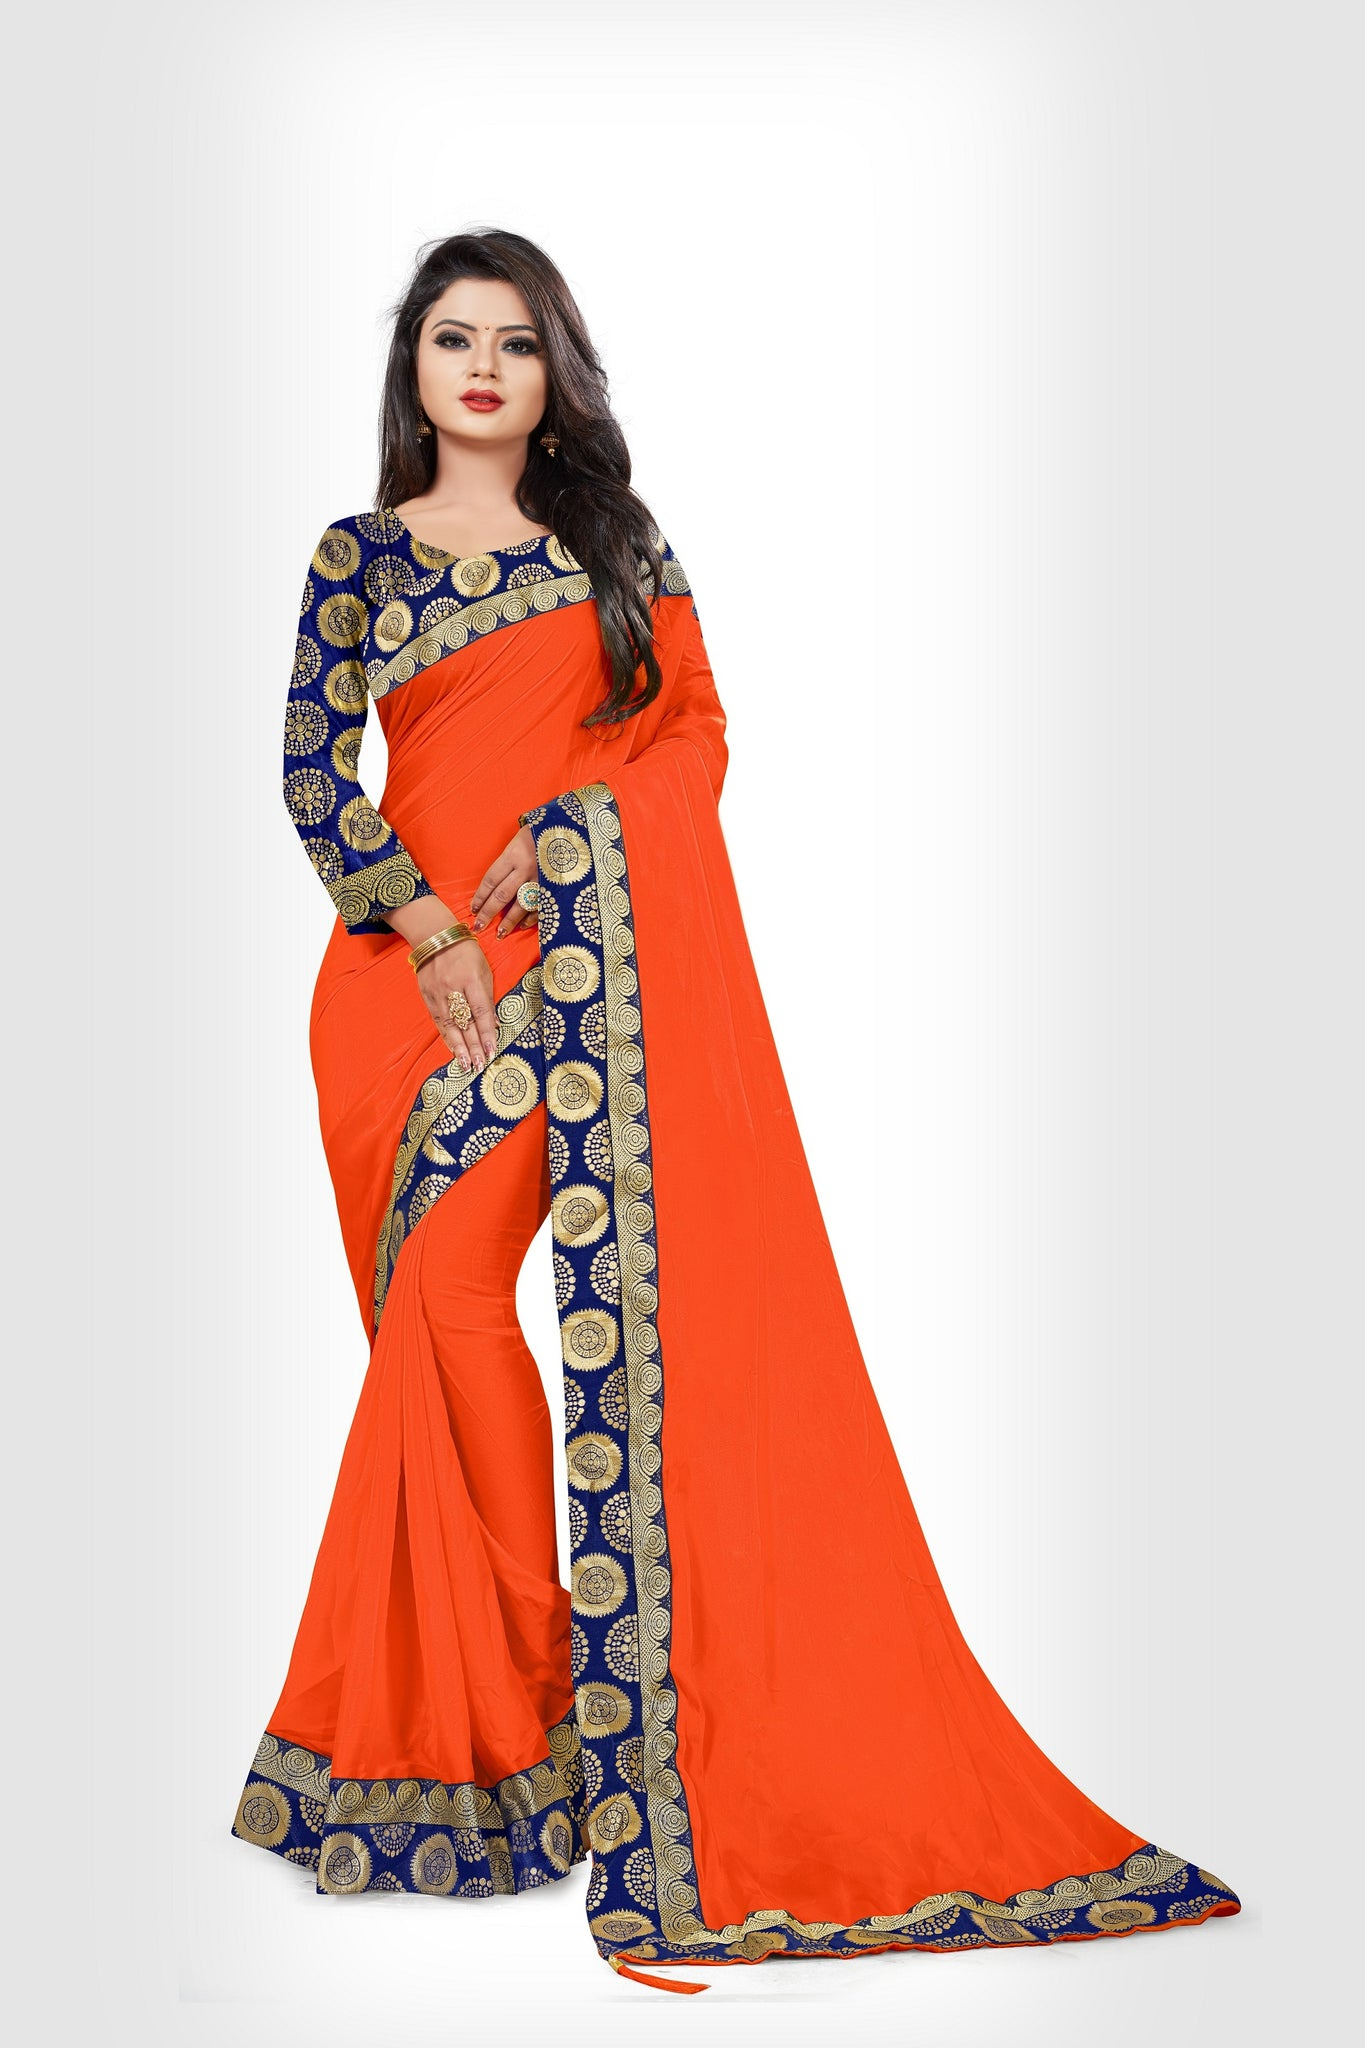 4f9a6ad82a99a Latest Designer Orange Color Rangoli Silk Saree With Brocade Blouse ...